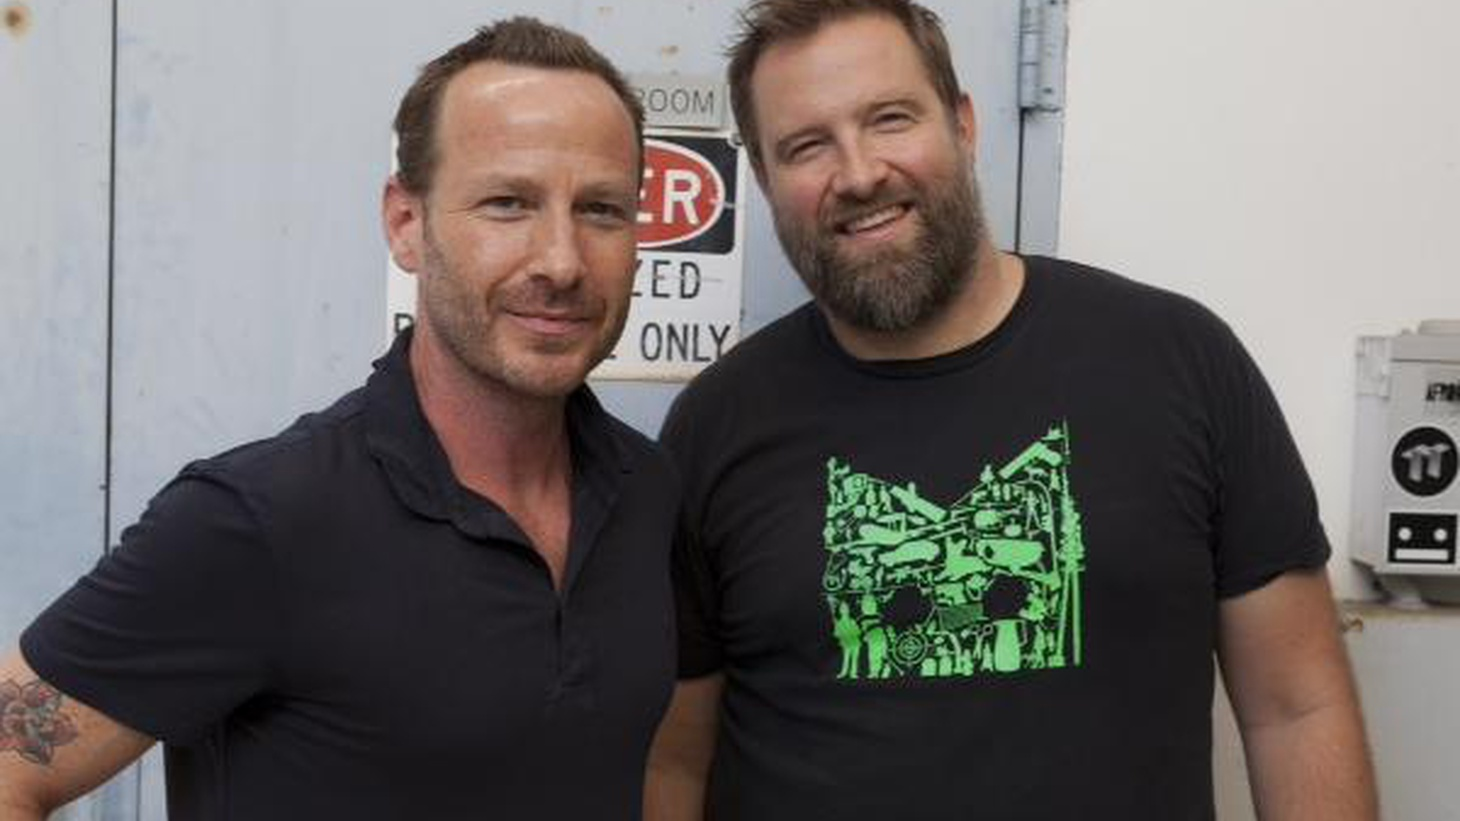 Claude VonStroke stops by KCRW to talk to Jason about the Dirty Bird sound, the range of artists on the label, and his own new album Urban Animal.